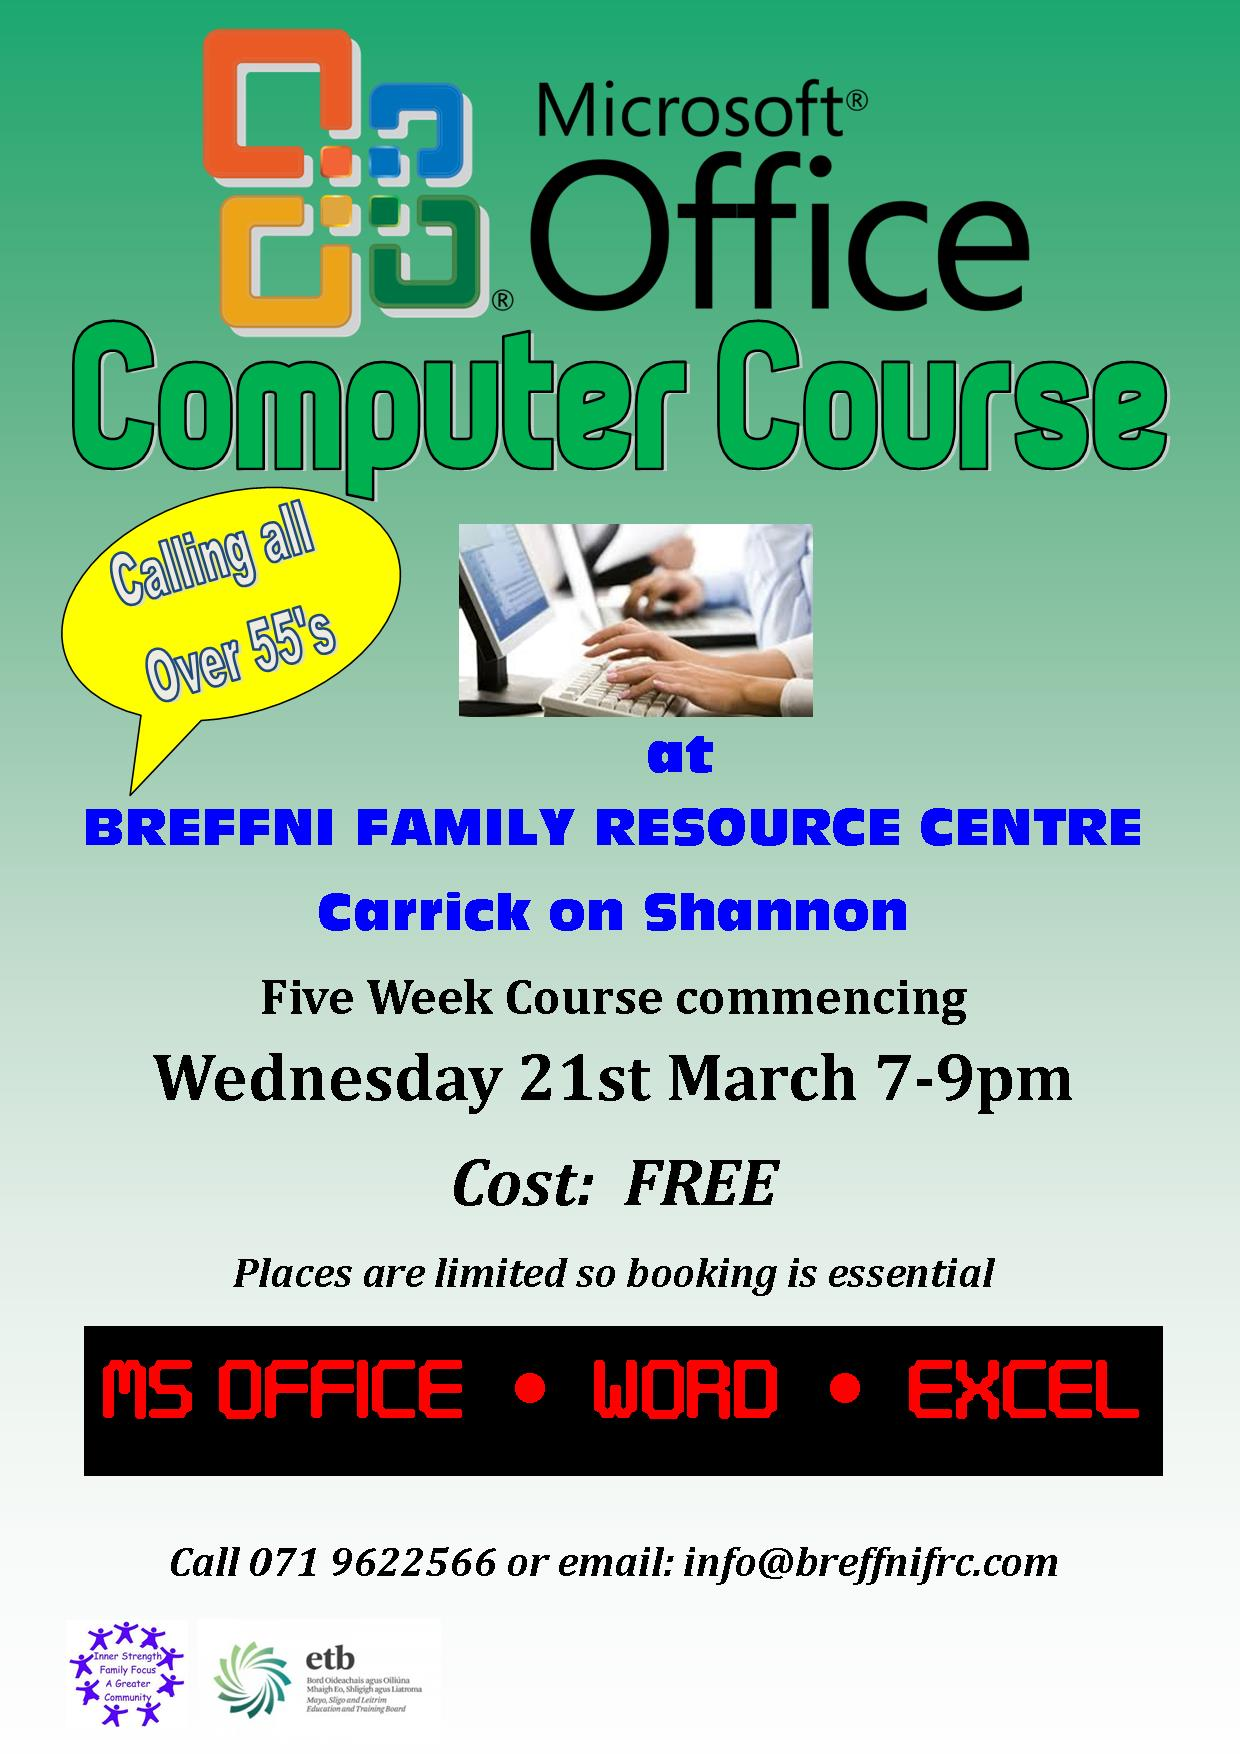 MyCarrick Event - Breffni Family Resource Centre - MS Office Compute Course